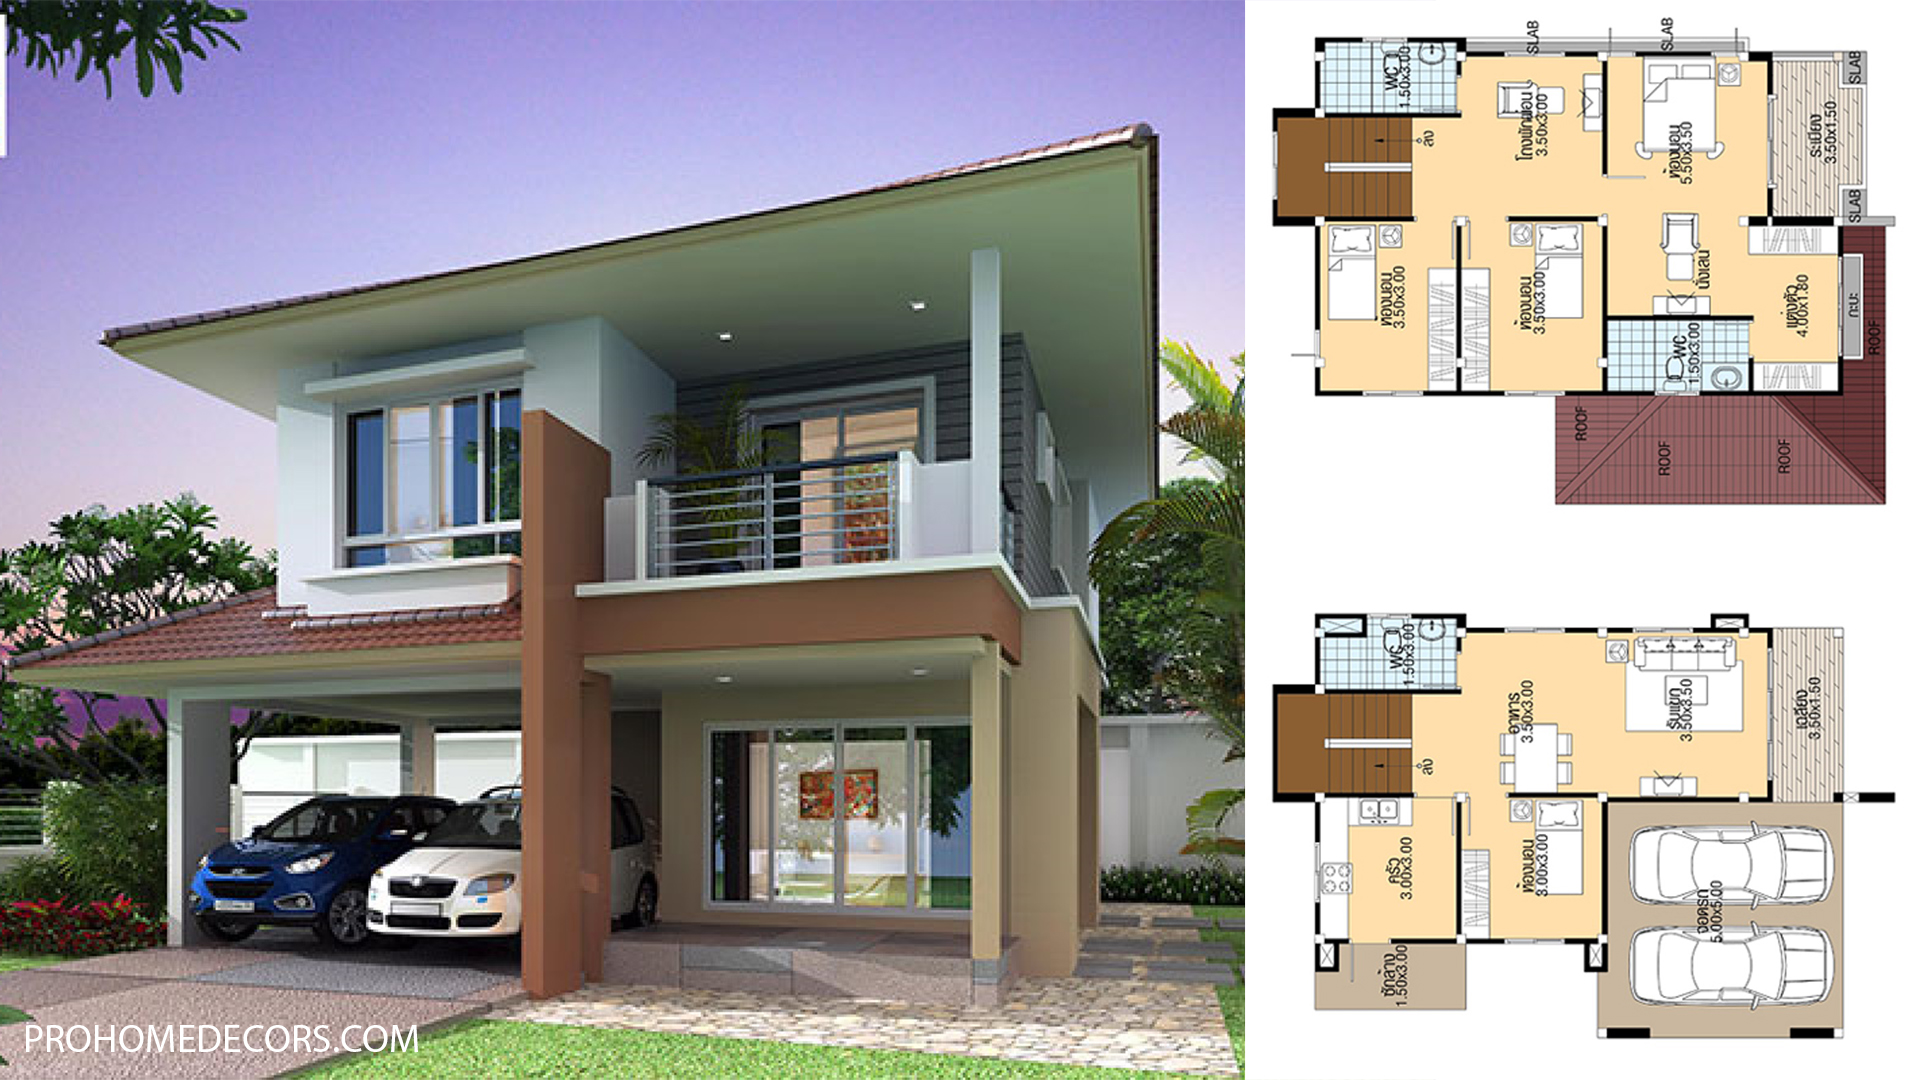 Small House Design 8.5×11 with 4 bedrooms